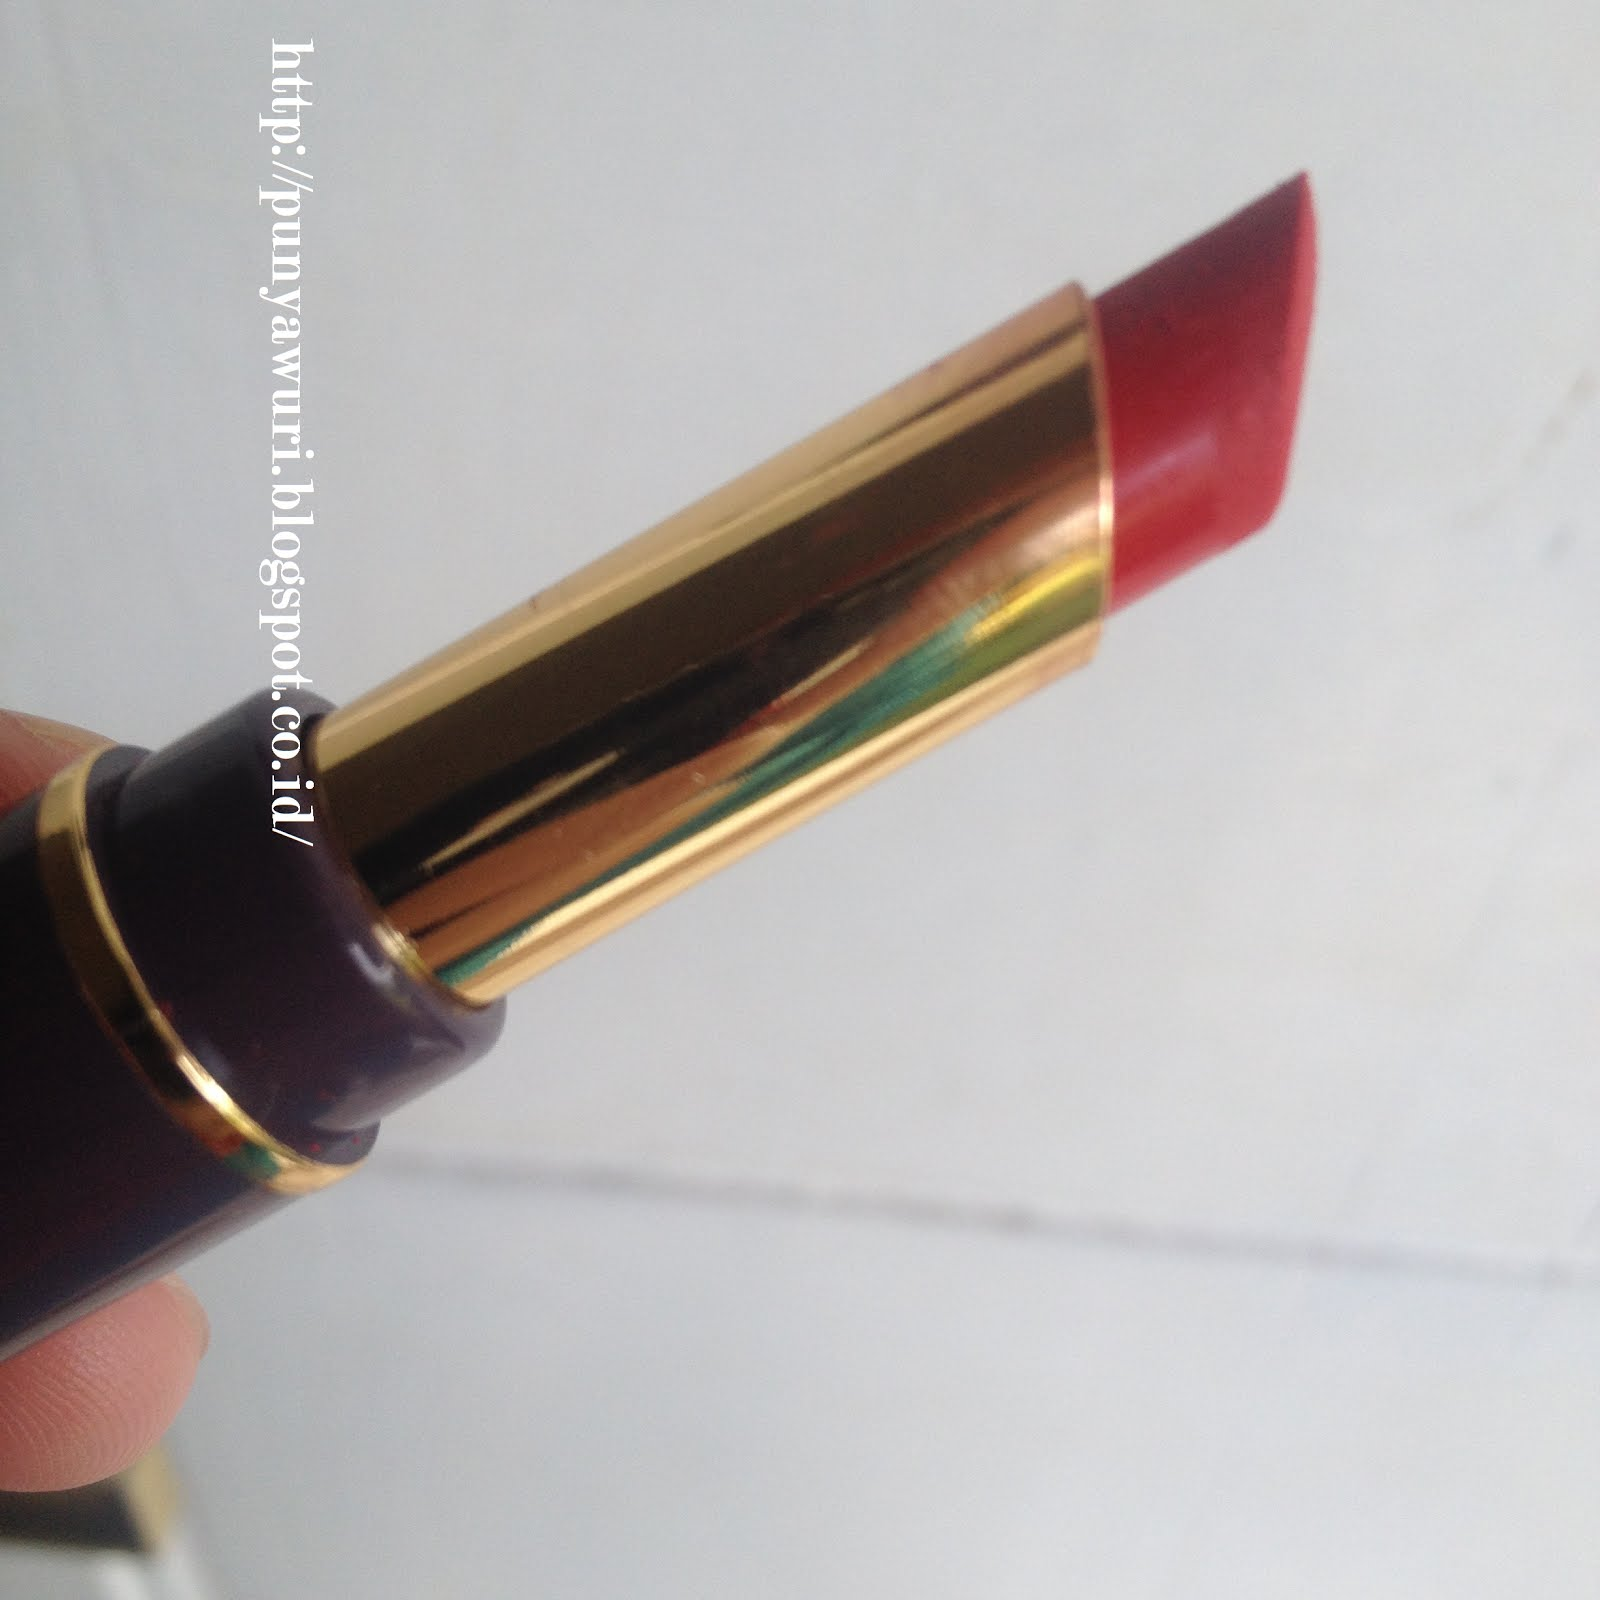 Harga Jual Lipstik Lindor Toko Kosmetik Dan Bodyshop Online Blog Lipstick Color Fix Review Colorfix Matte 1 Red Wuriw